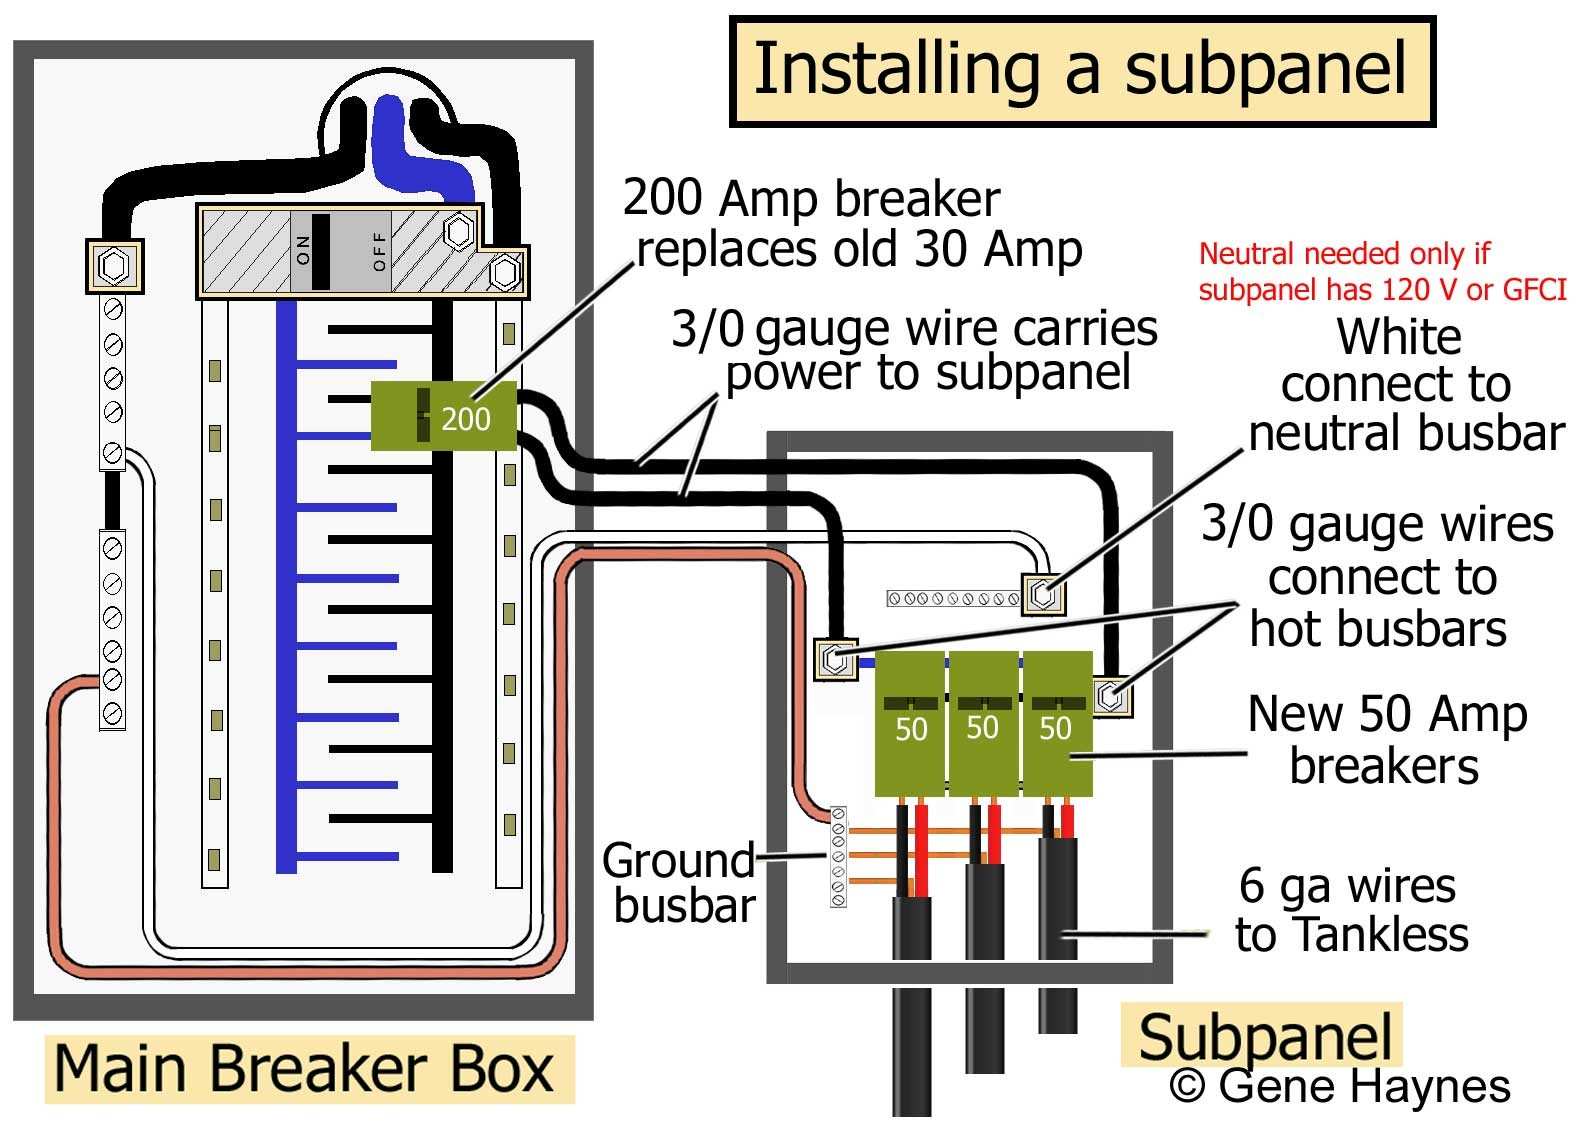 r image 150 and subpanel with 240Volt and 120Volt 150 and breaker uses 2 0 wire Neutral wire needed only if subpanel has 120Volt breakers or GFCI